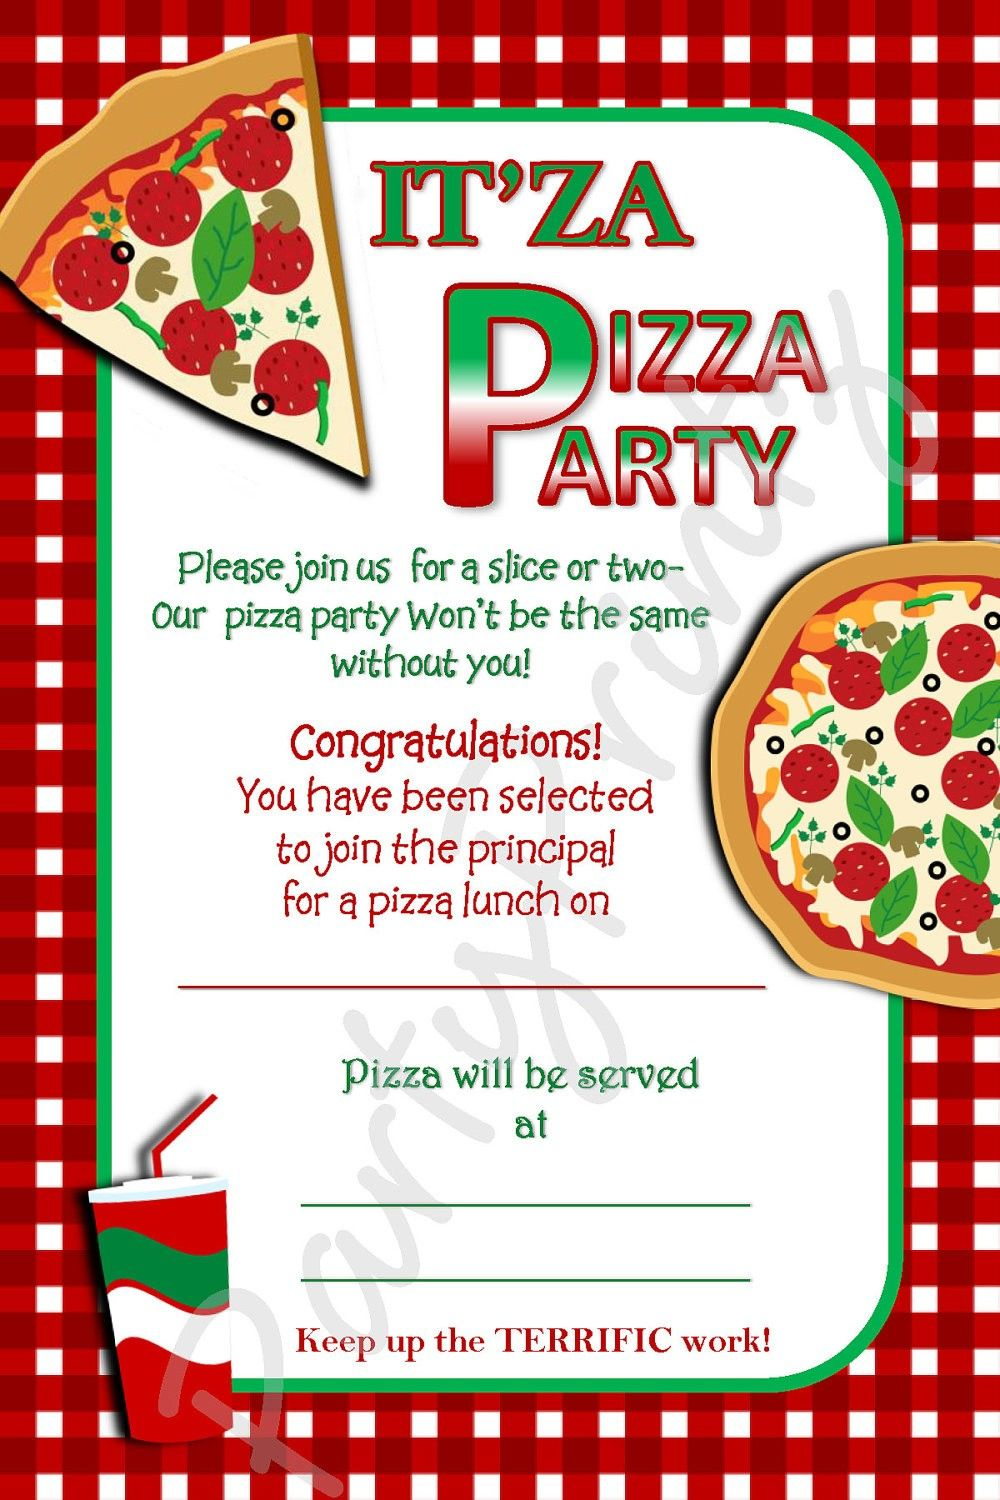 Pizza Party Invitations Party Invites Pinterest Pizza Party - Pizza party invitation template